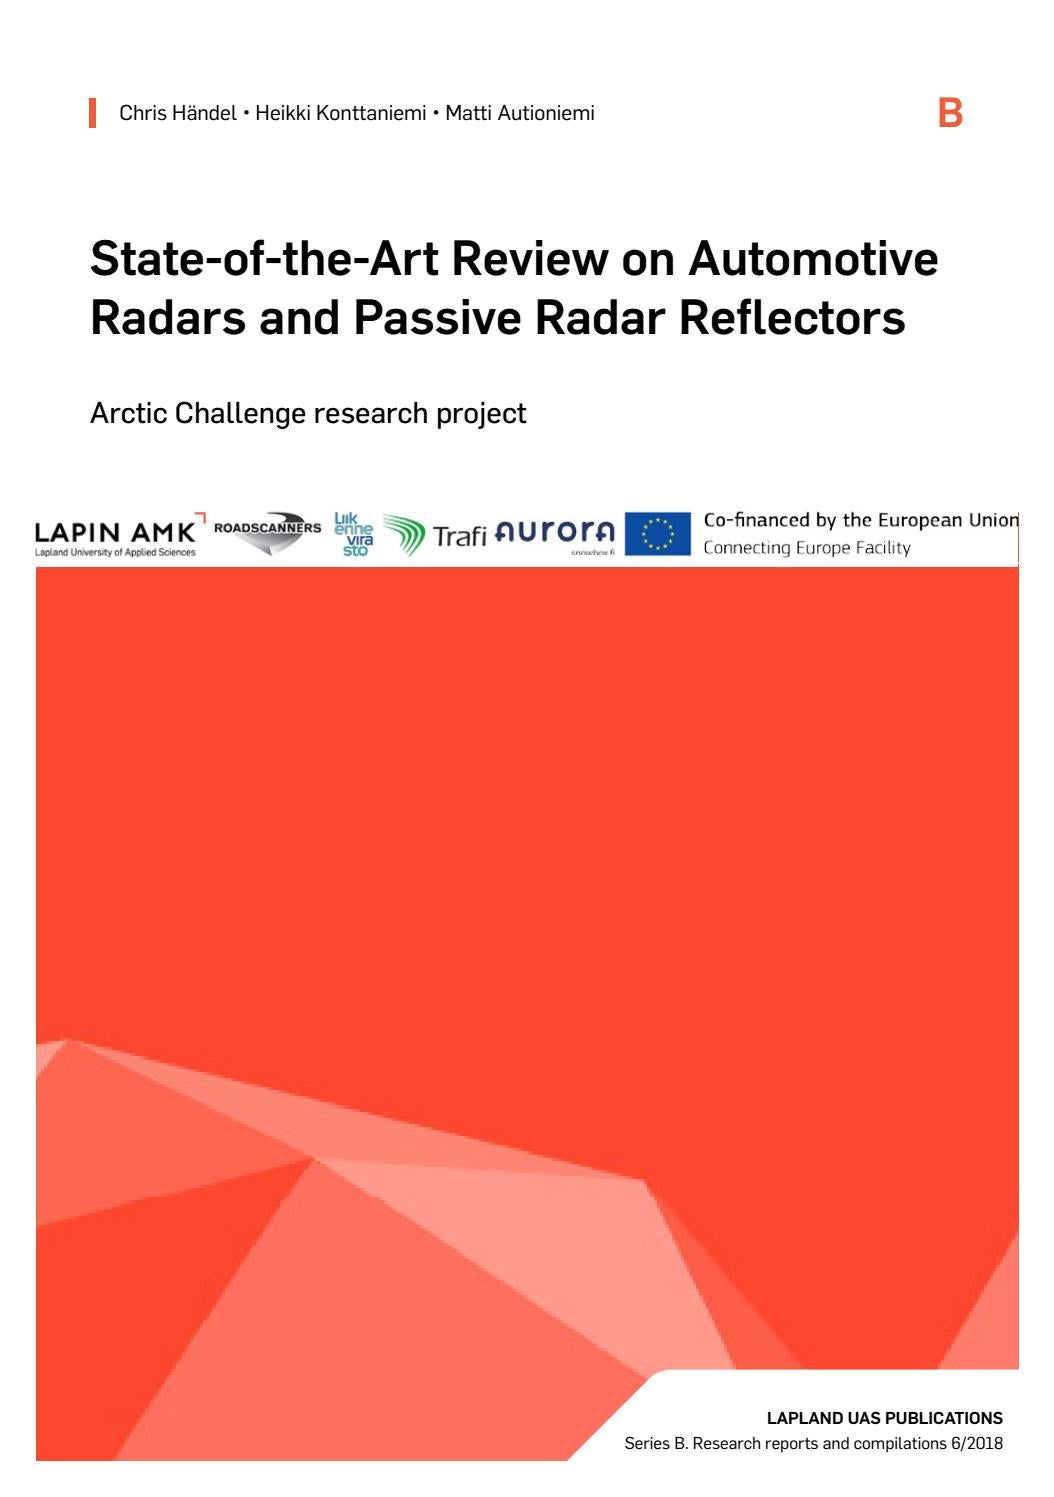 State of the art review on automotive radars and passive